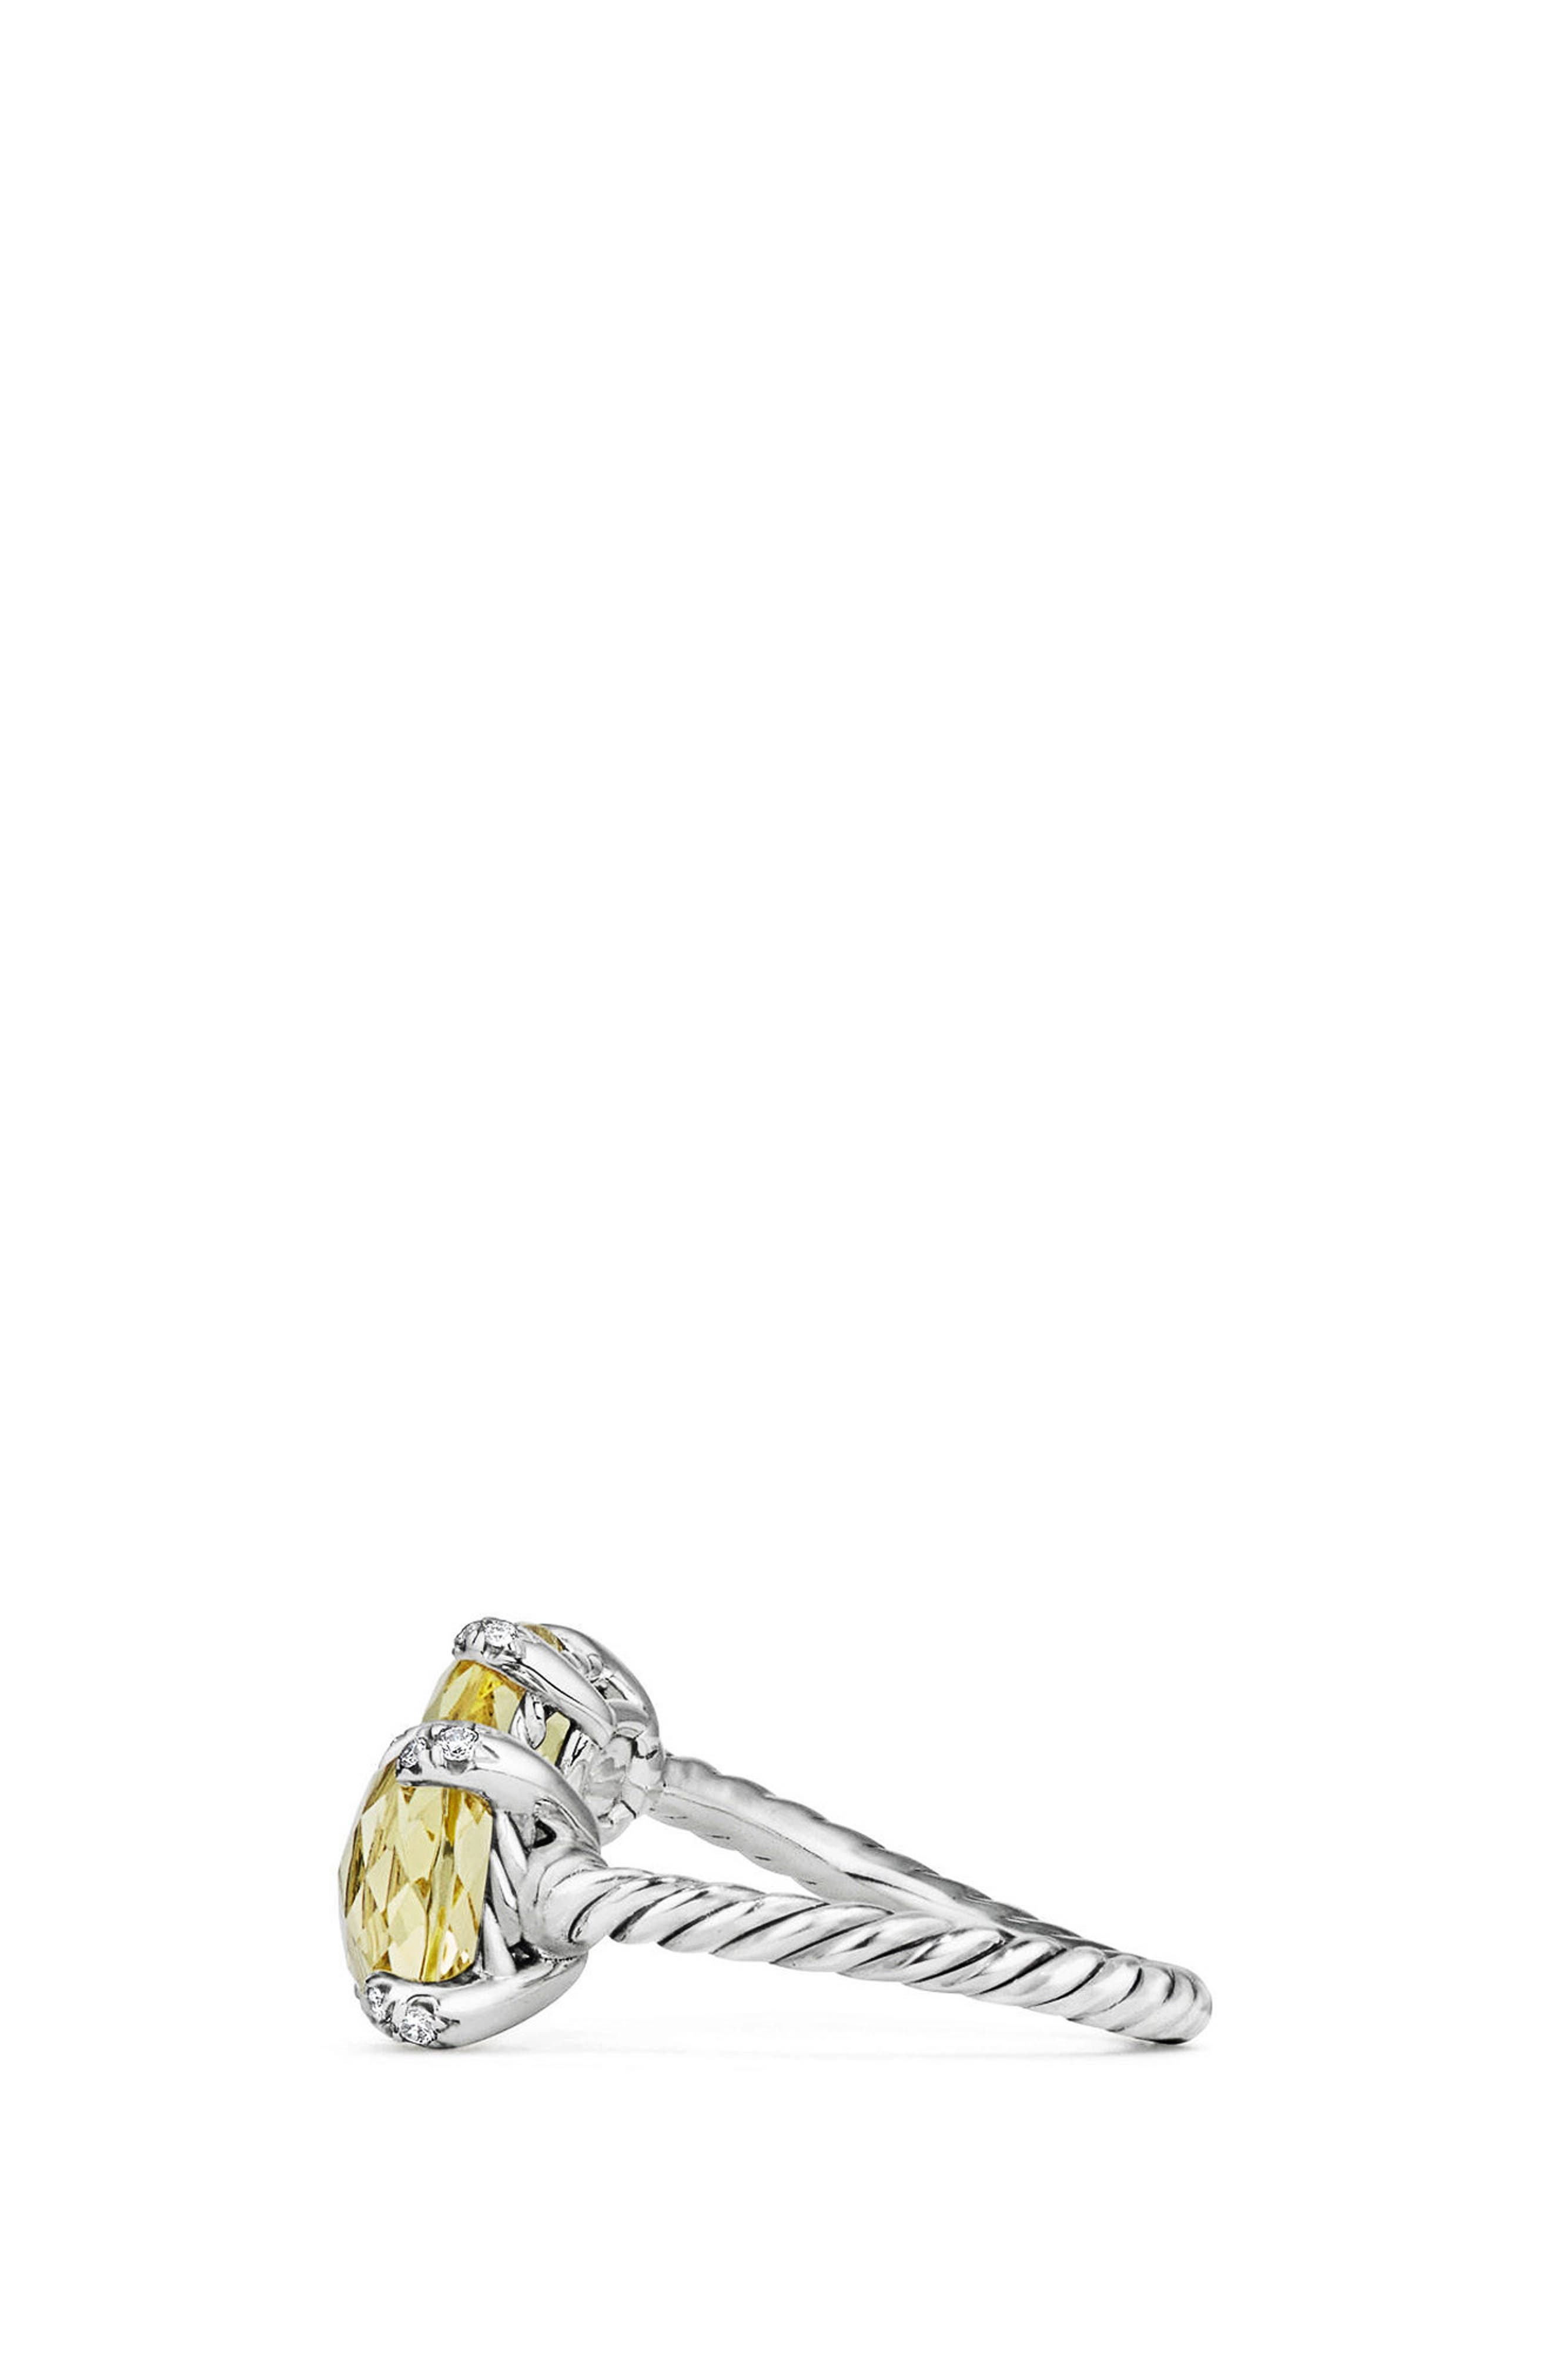 Châtelaine Bypass Ring with Diamonds,                             Alternate thumbnail 2, color,                             Lemon Citrine?